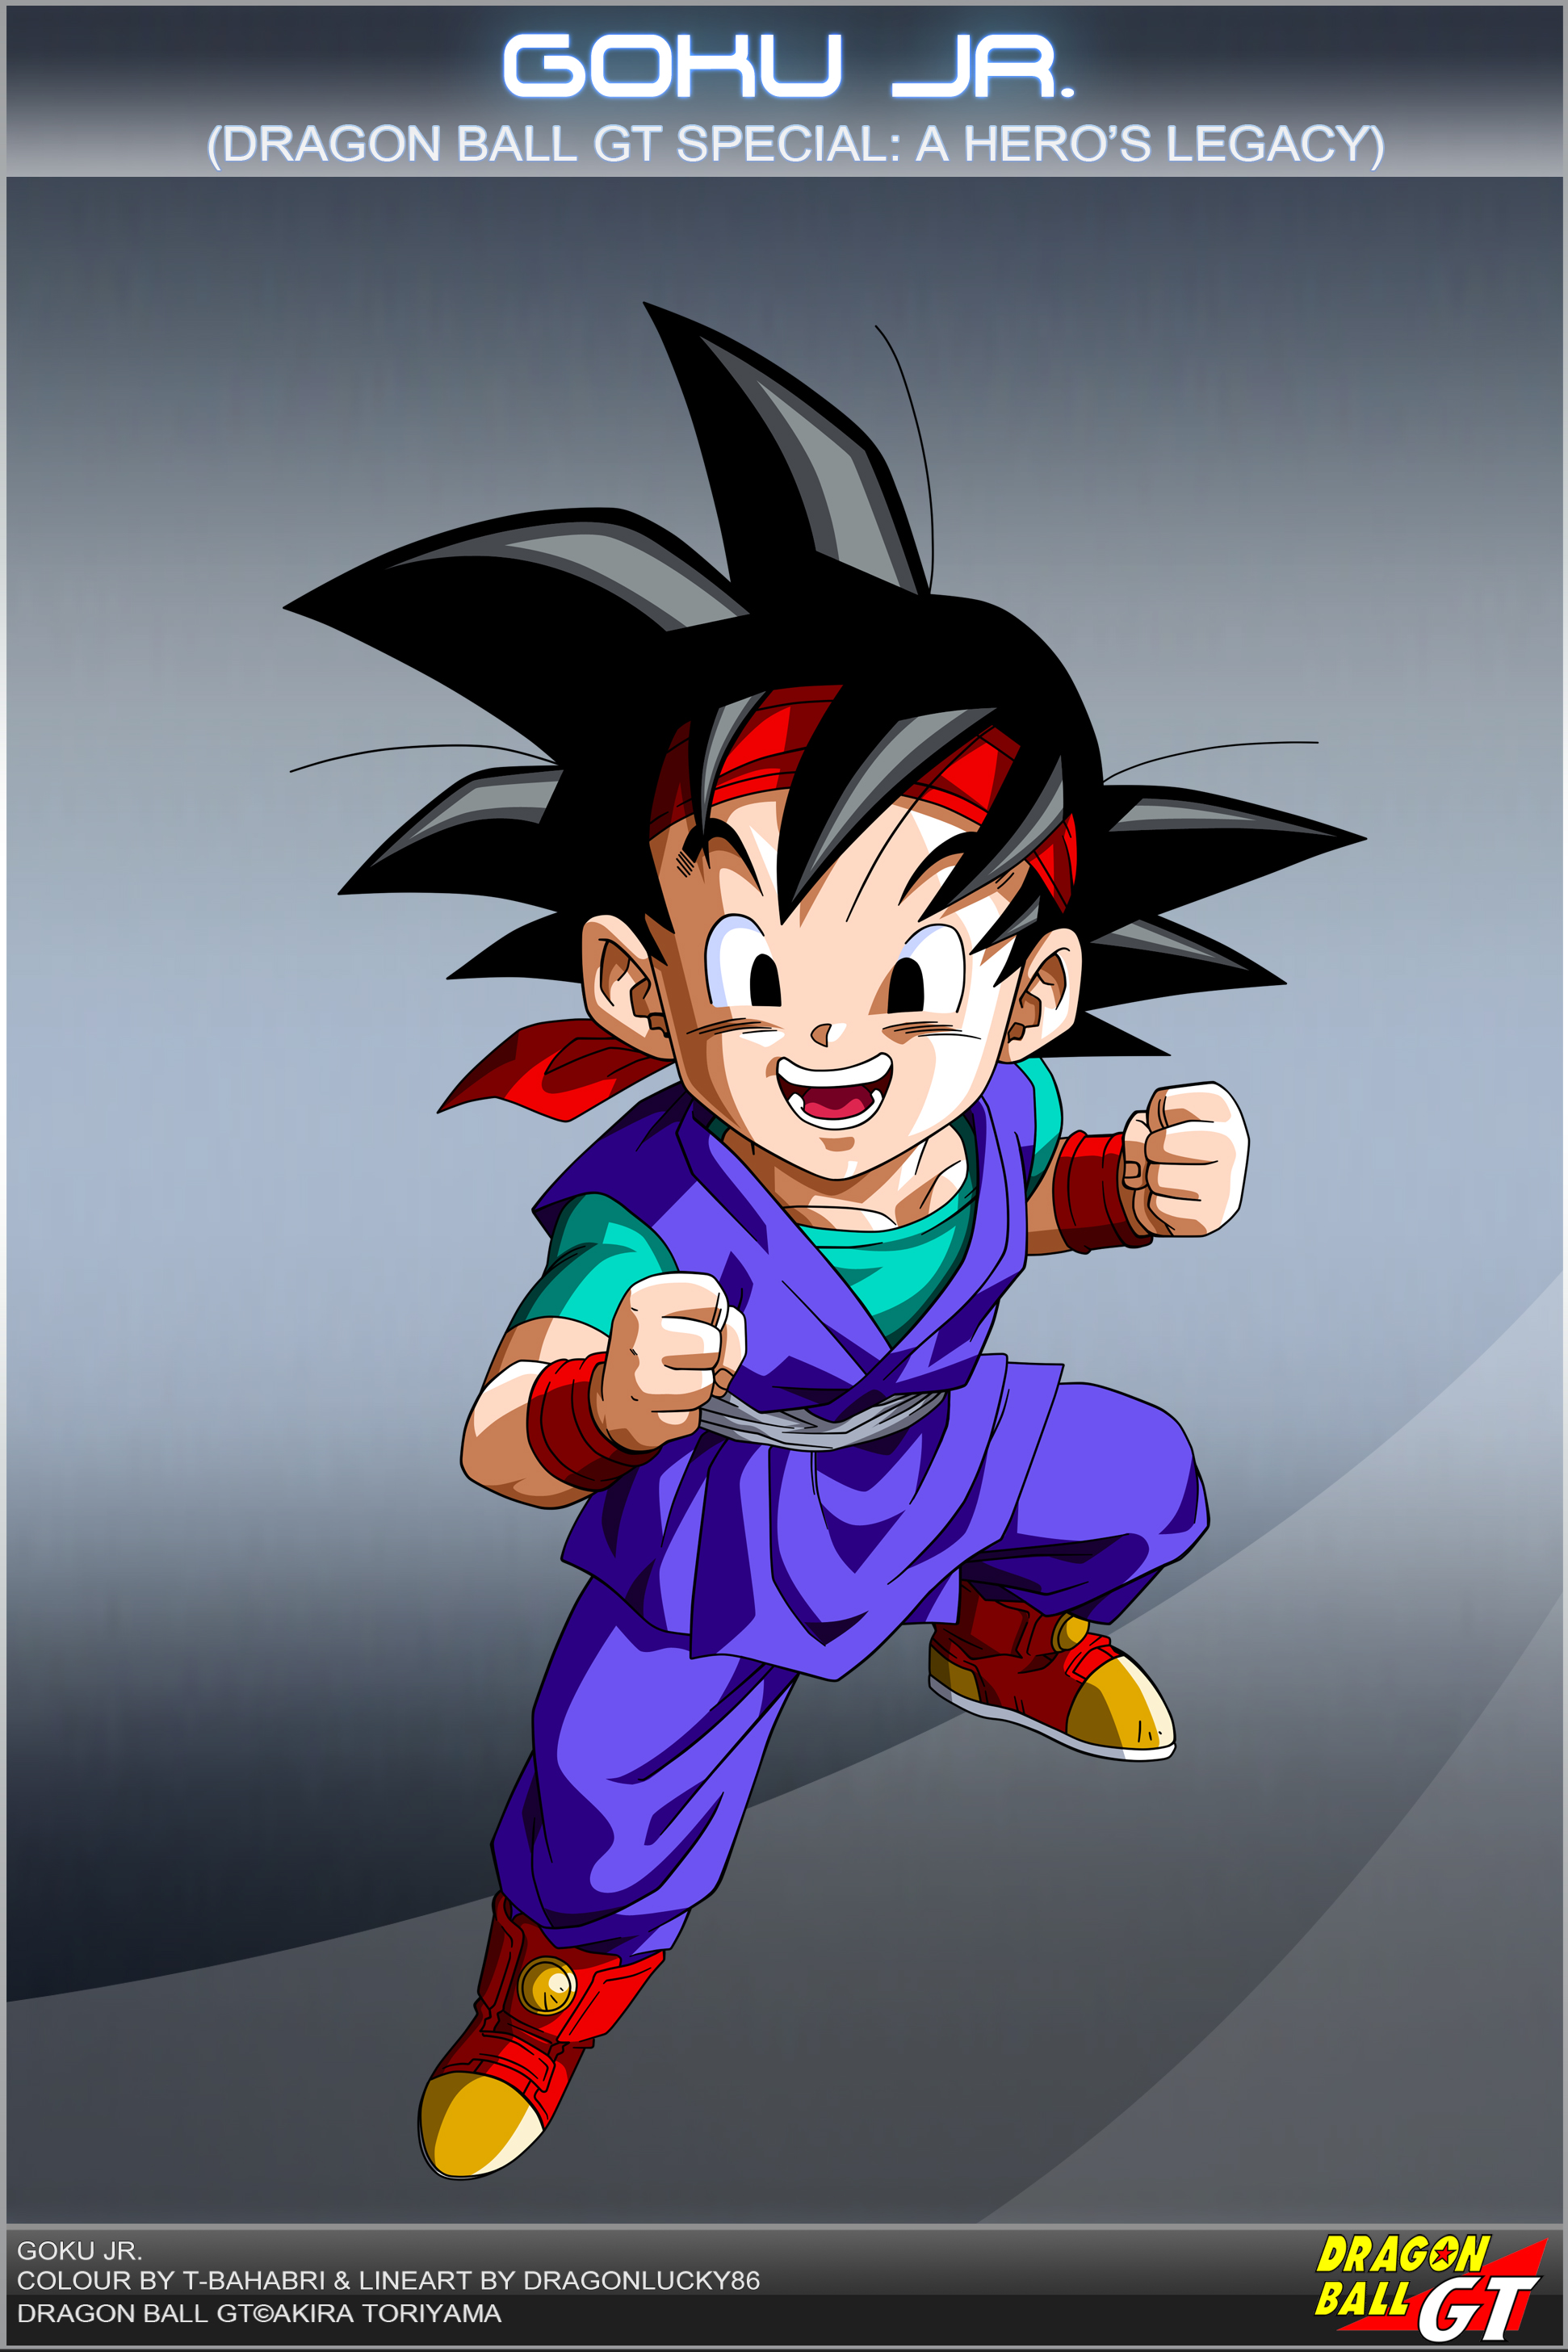 Dragon ball gt goku jr by dbcproject on deviantart - Dragon ball gt goku wallpaper ...